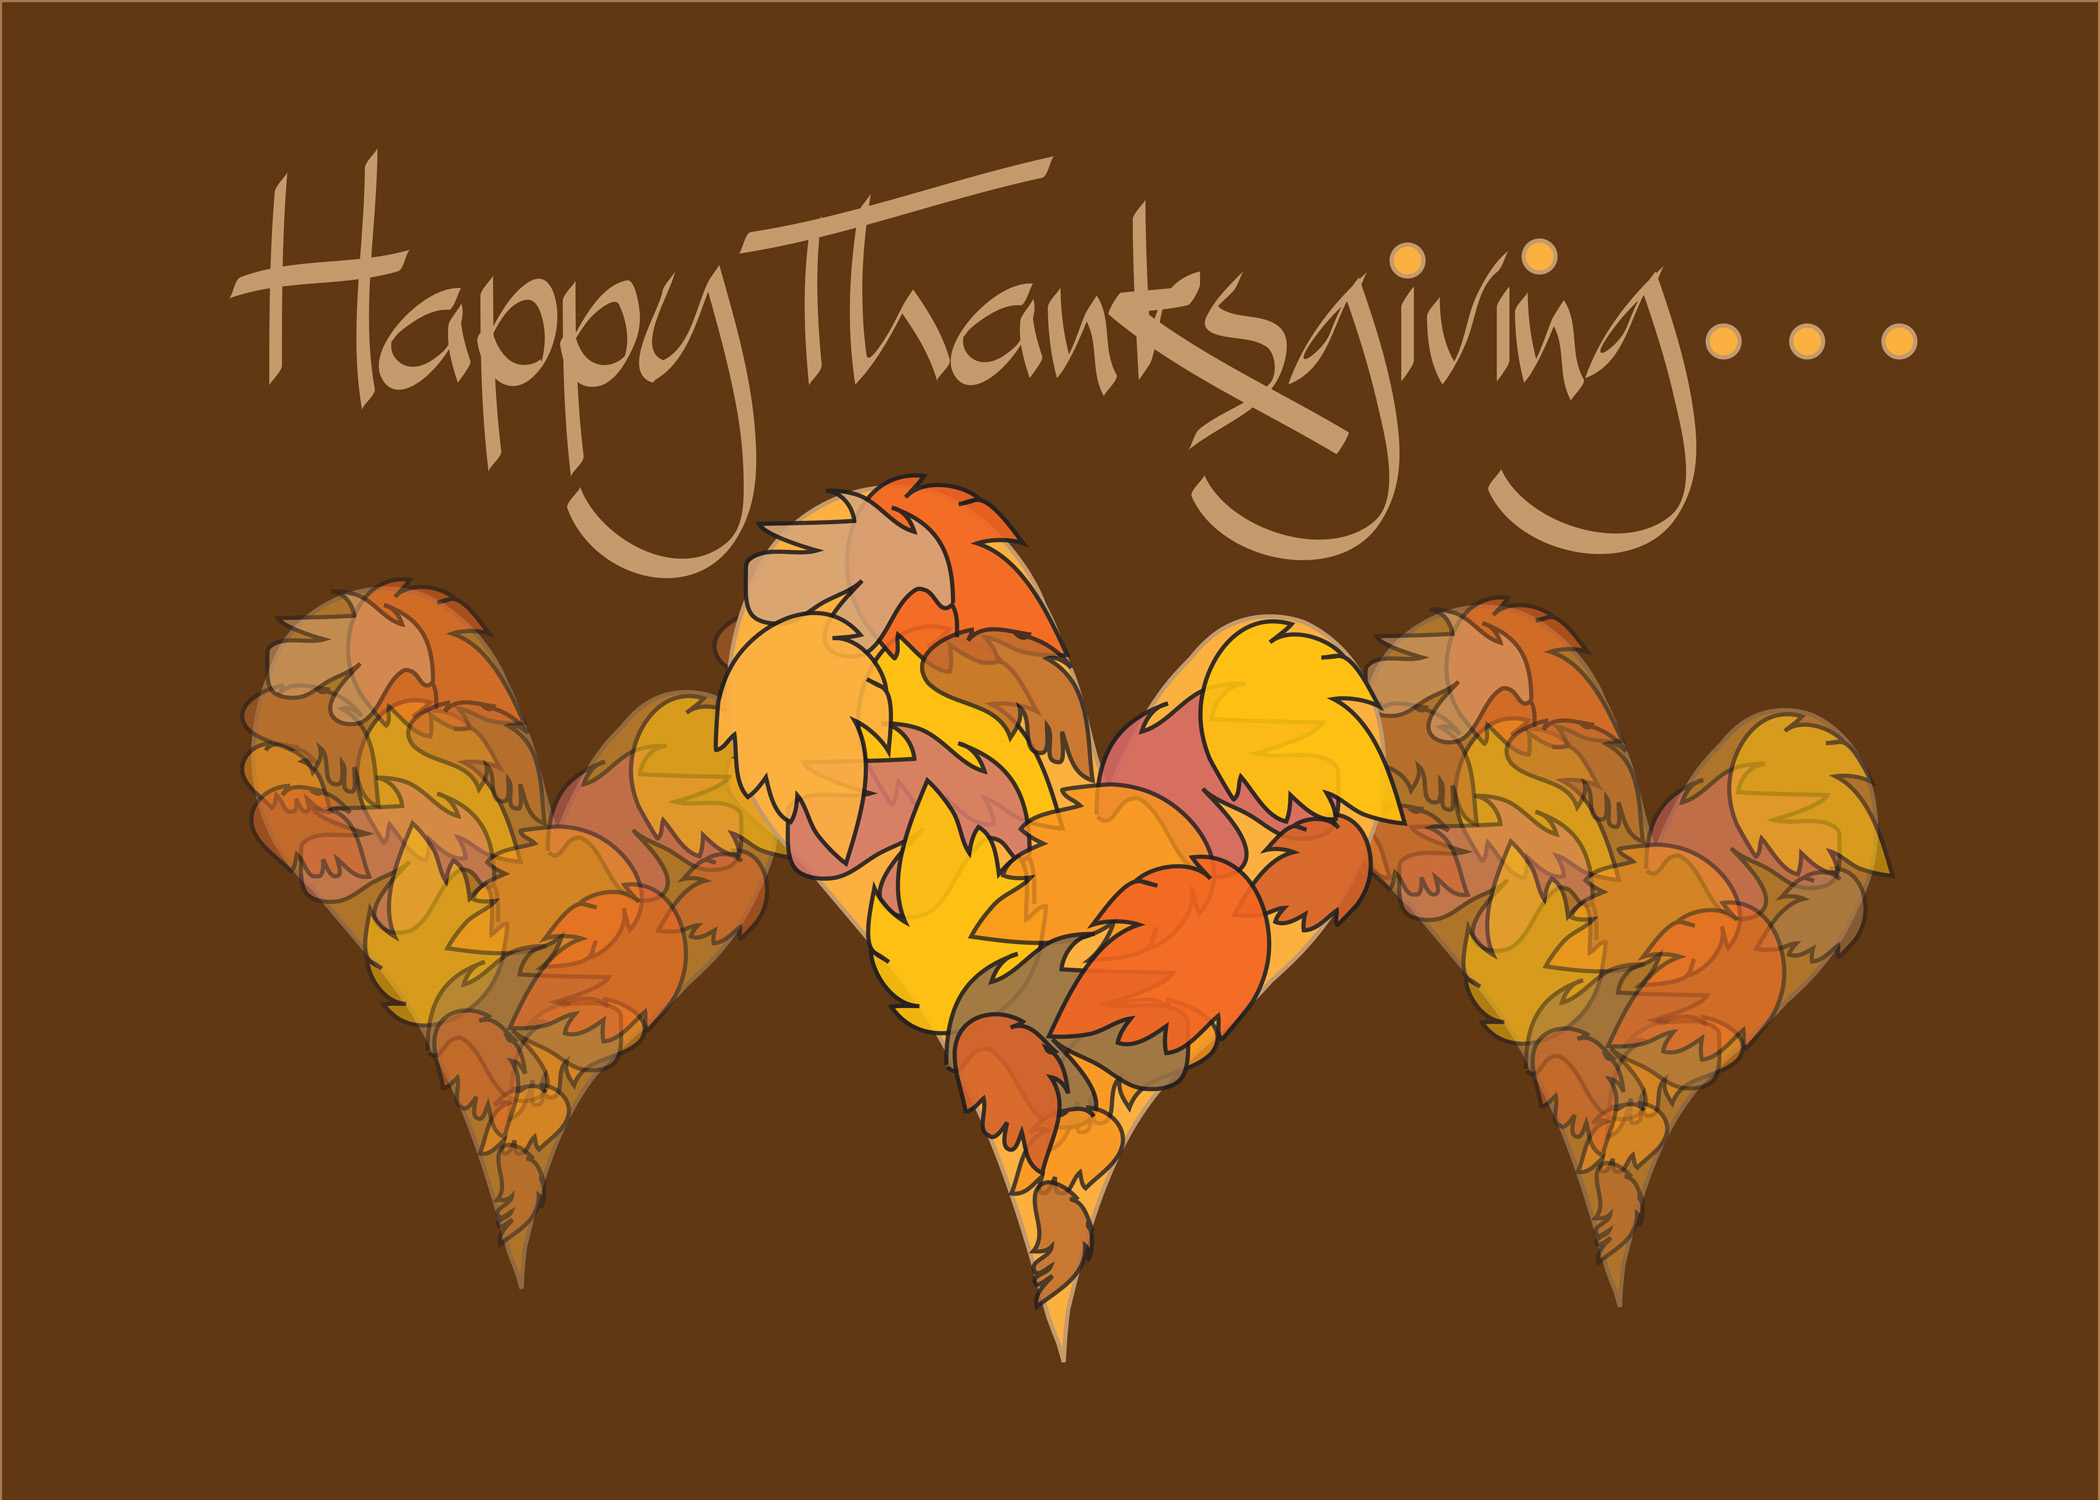 Happy Thanksgiving Day Pictures, Wallpapers  HD Images  2100x1500